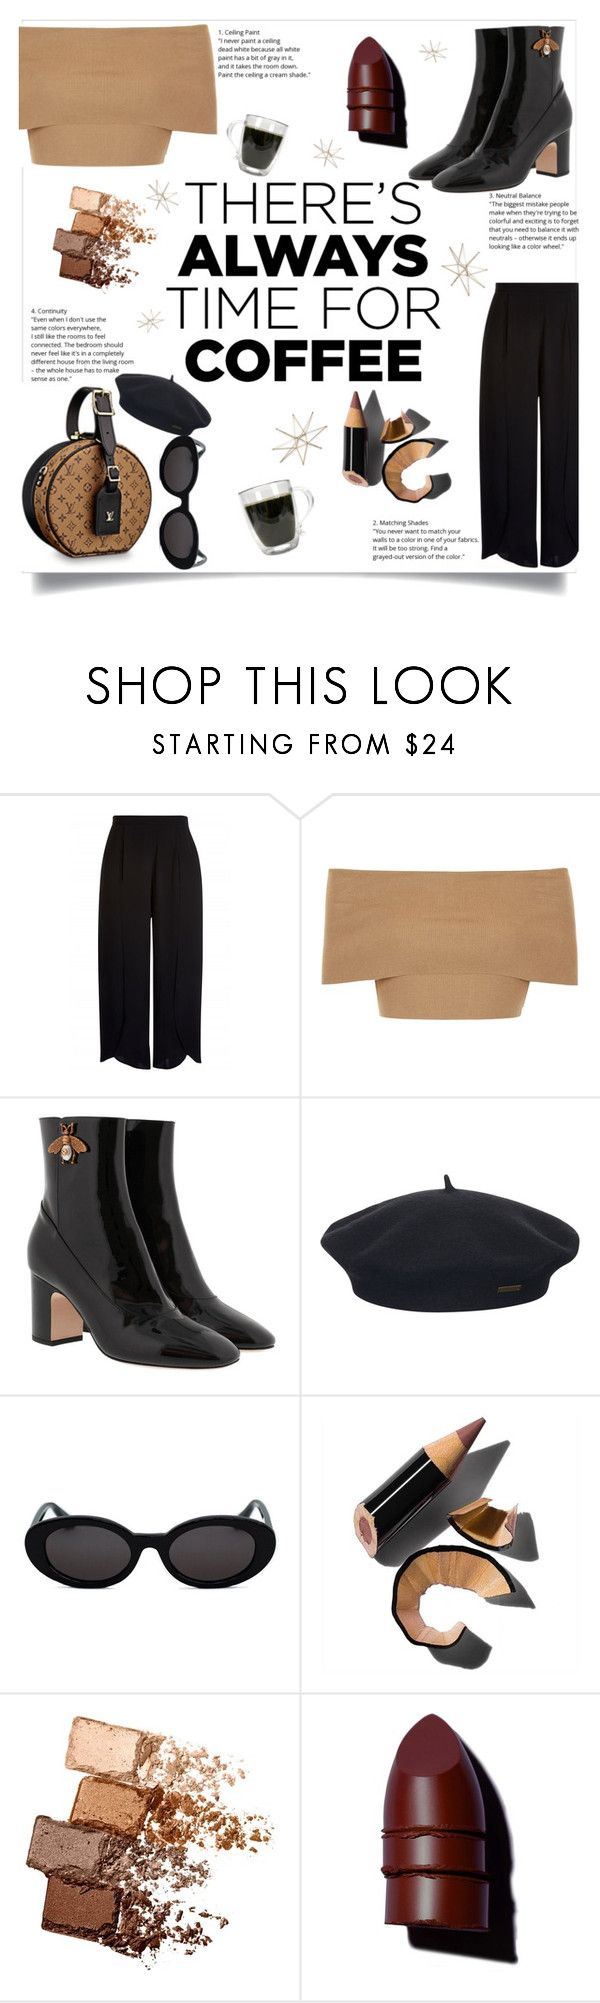 """""""Coffee (Con)"""" by kassmv ❤ liked on Polyvore featuring Blue Vanilla, Gucci, Element, Bobbi Brown Cosmetics, Maybelline, Anastasia Beverly Hills, Uttermost and CoffeeDate"""